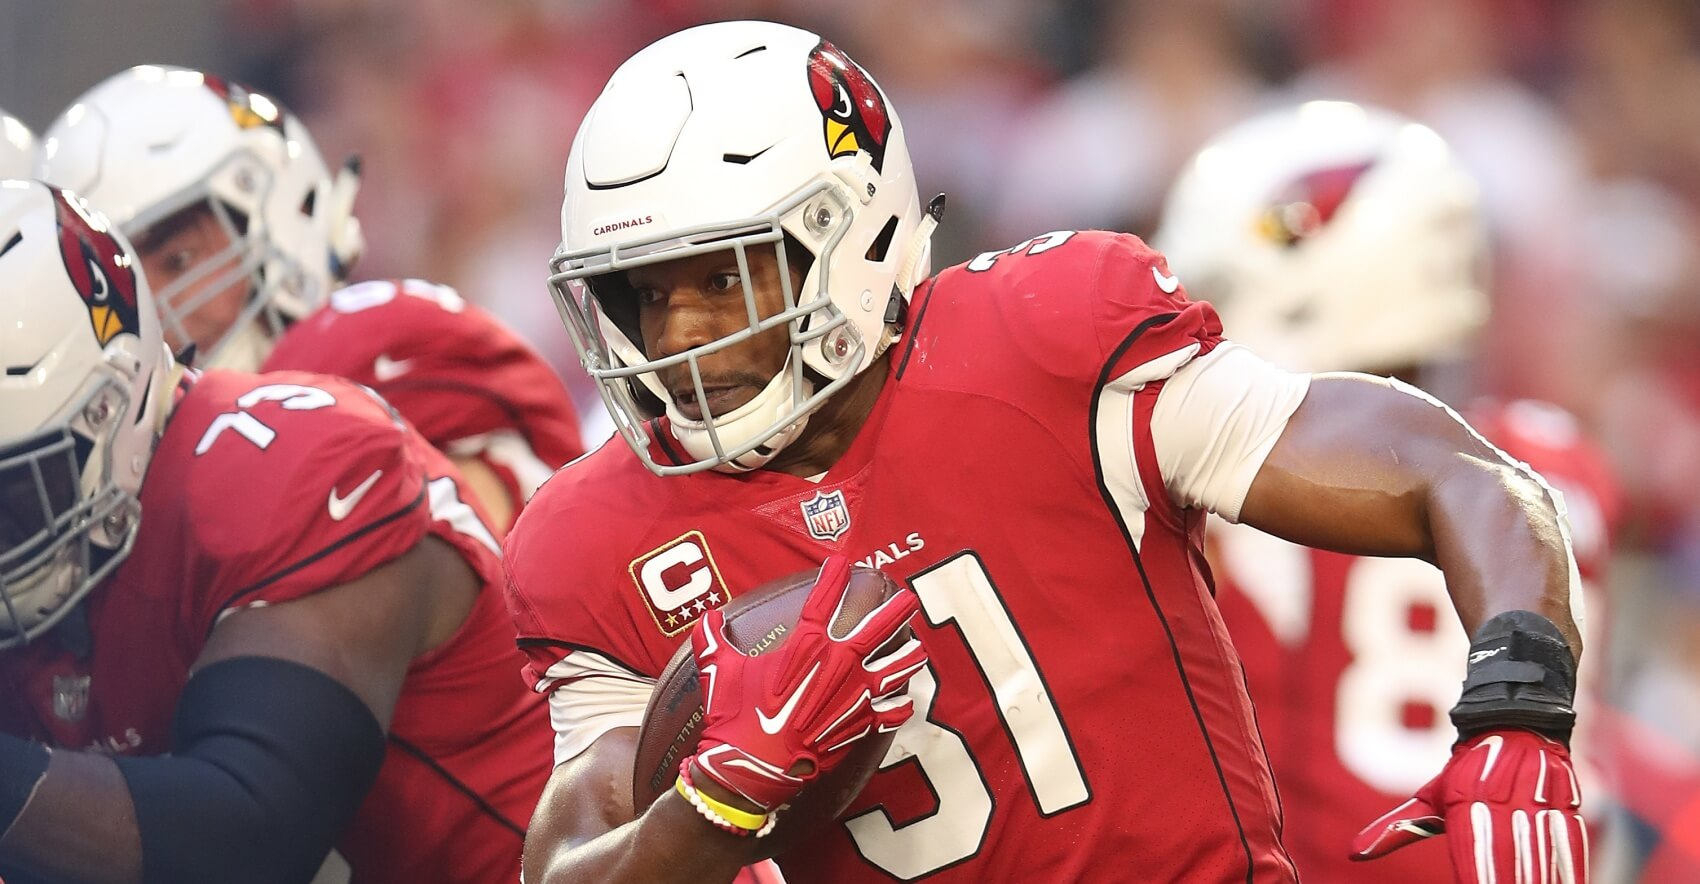 Fantasy Football: David Johnson is a Top-5 RB Discount